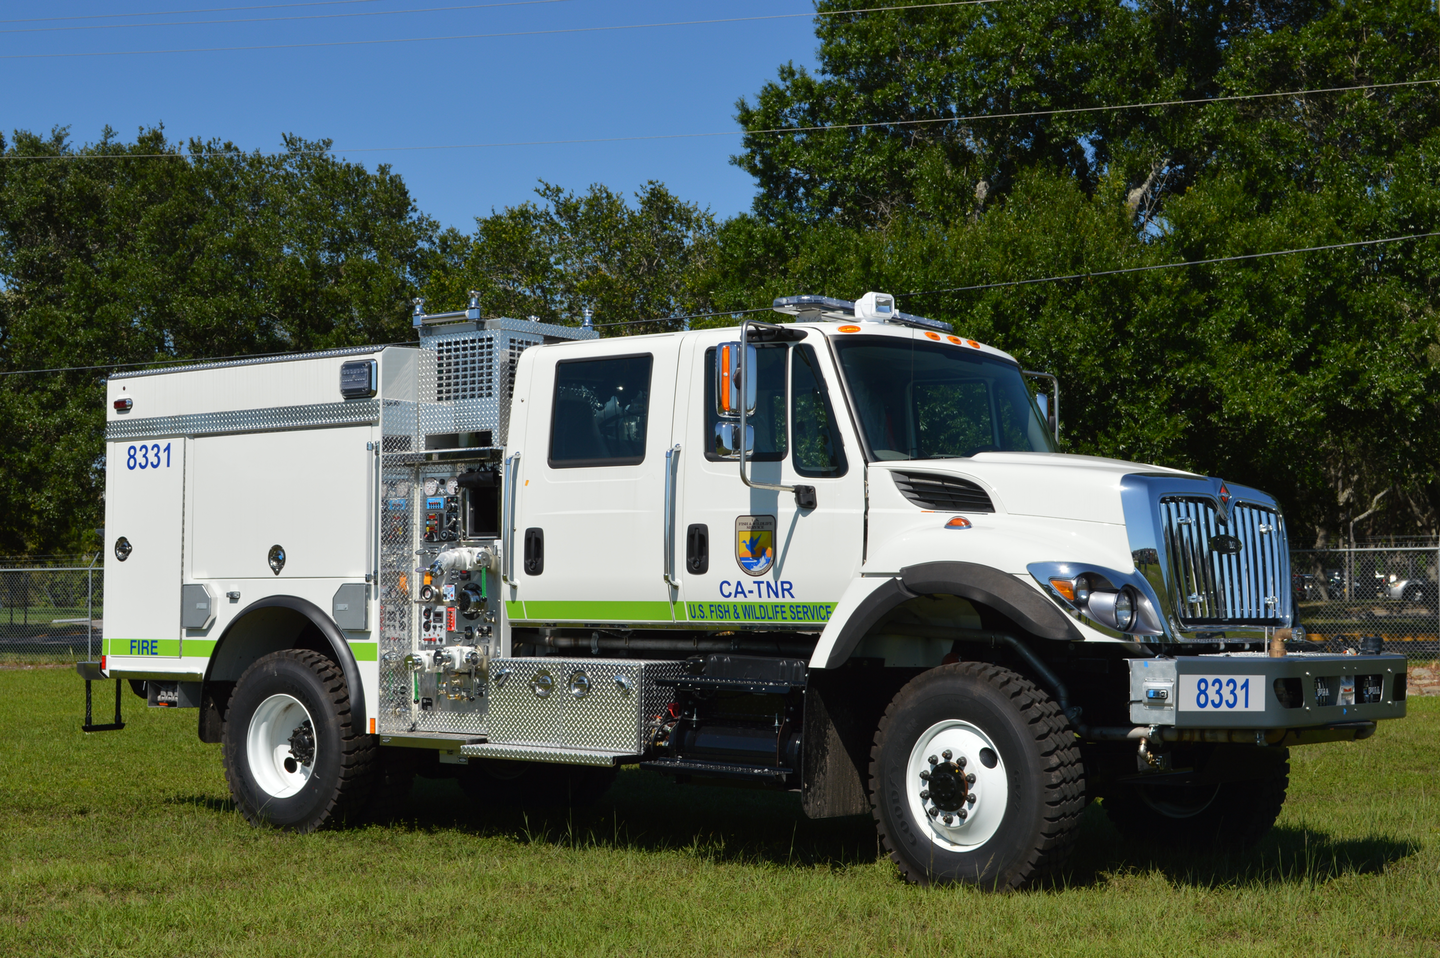 The Class 8 commercial chassis can be specified with chassis, drivetrain and safety components to provide a well-designed vehicle for use in wildland fire protection. Many wildland Type 3 vehicles utilize a short-wheelbase, four-door cab to accommodate the fire pump, tank and body. The International 7400 model chassis with factory-installed four-wheel drive was utilized for this vehicle.